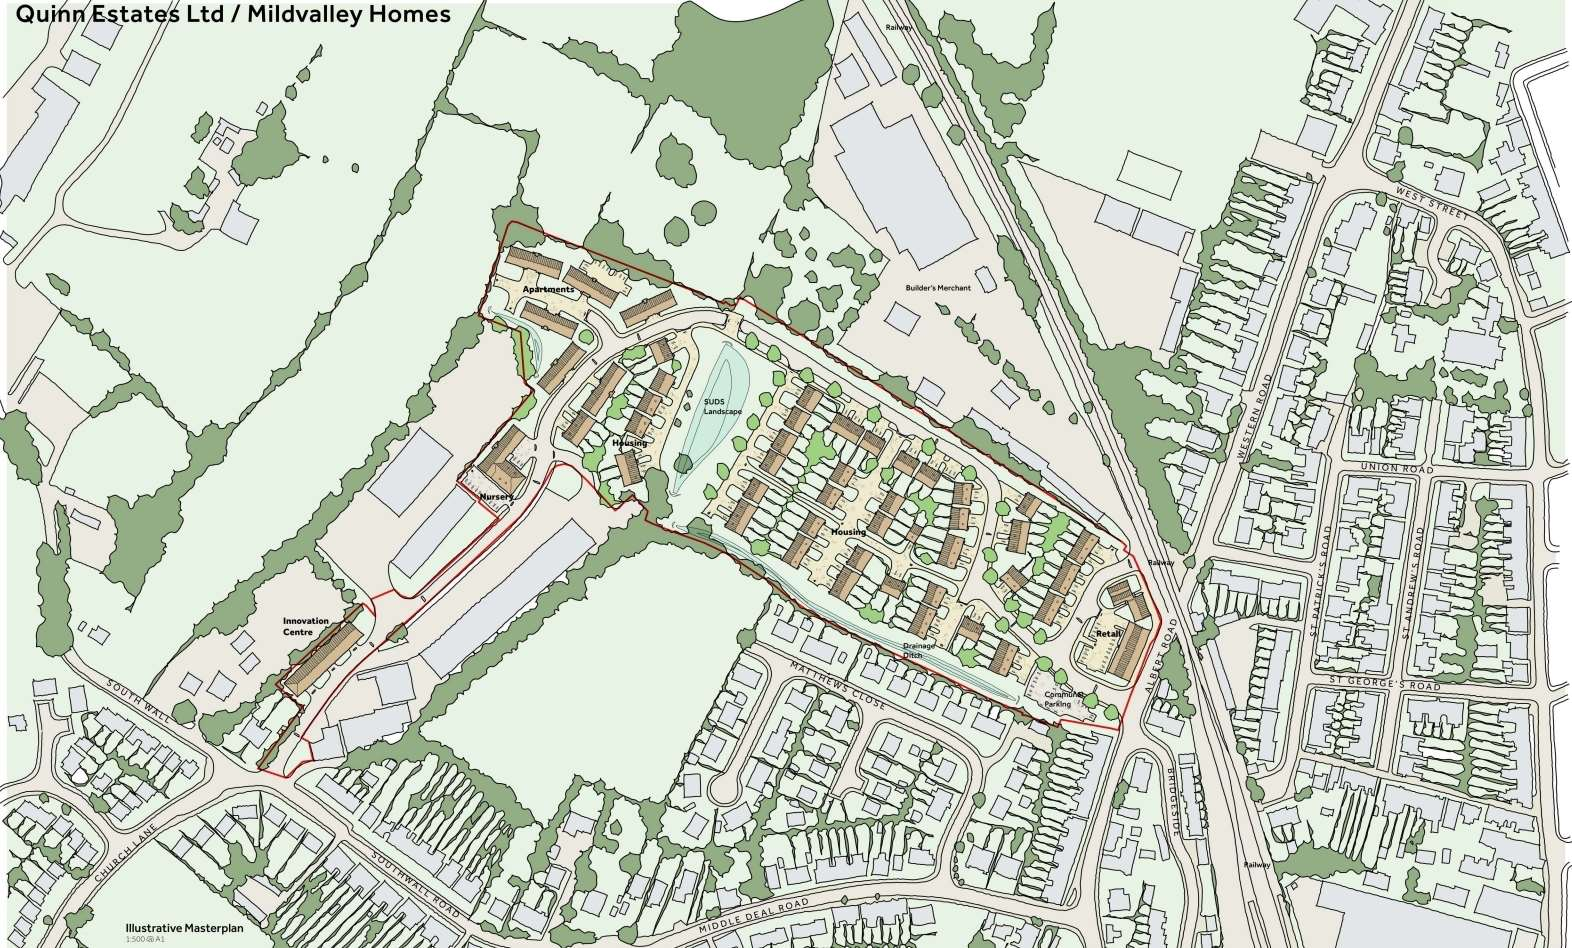 Quinn Estates is proposing to build 142 houses, a nursery, an innovation centre, a small shop and a link road between Albert Road and Southwall Road